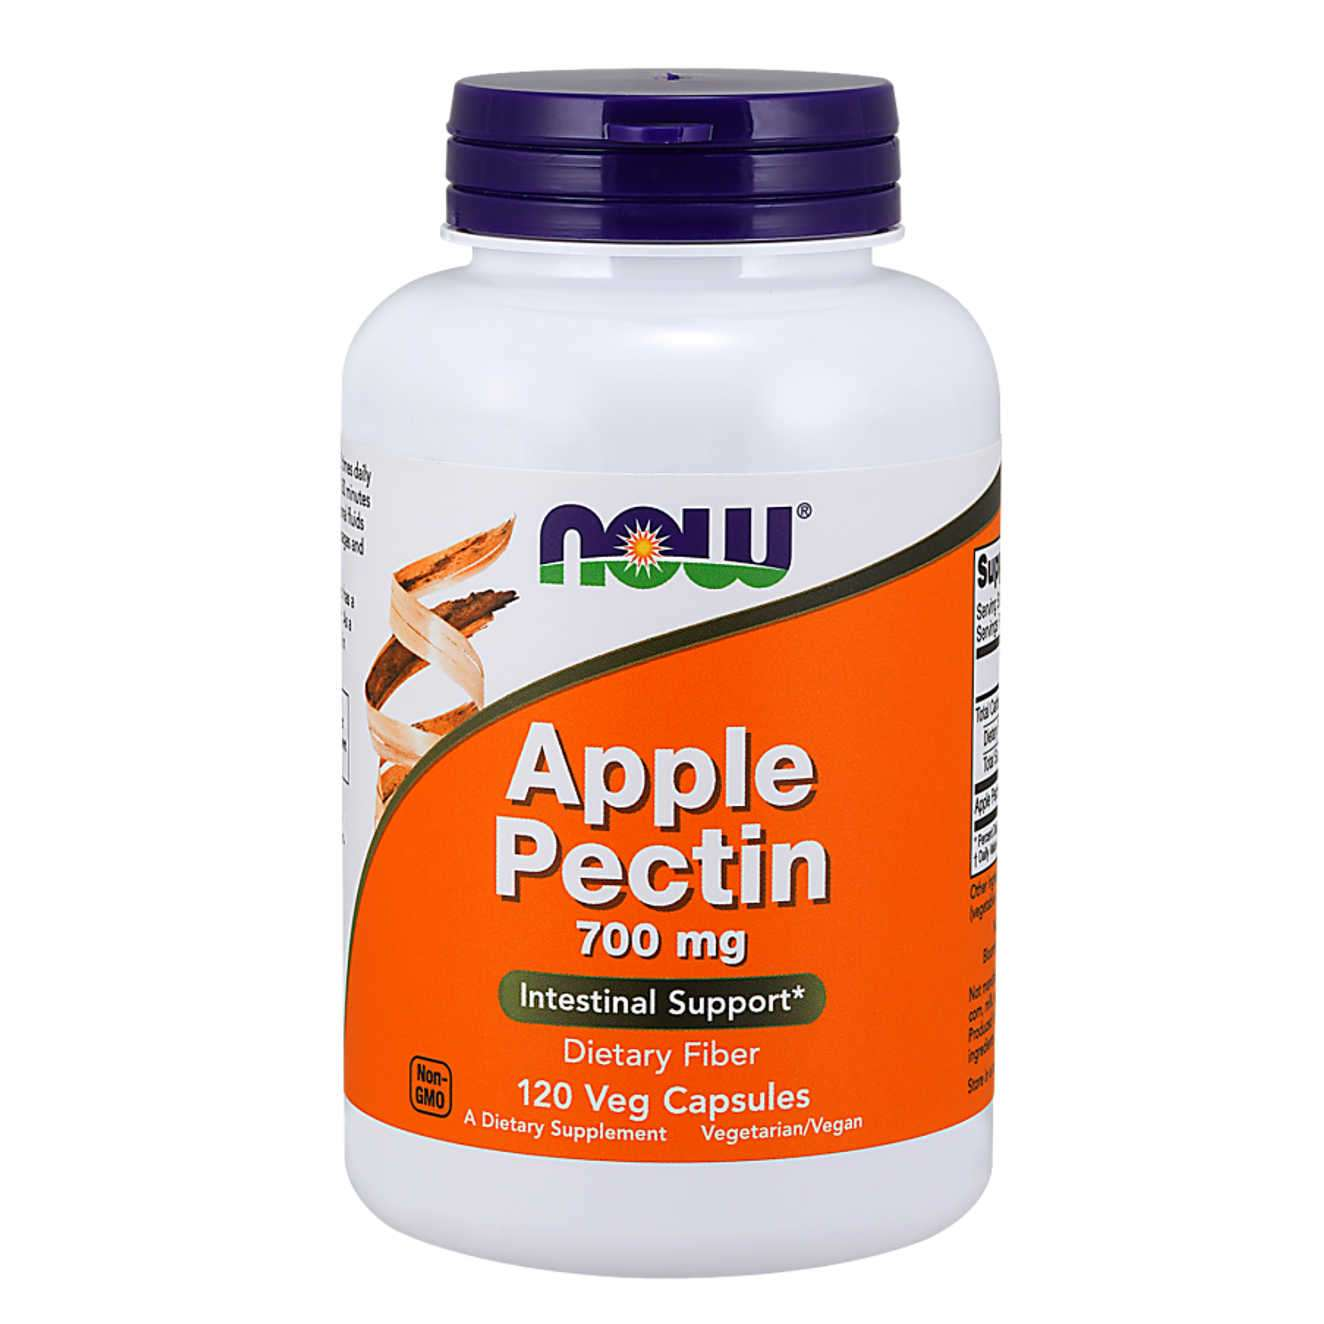 APPLE PECTIN 700mg - 120 veg caps